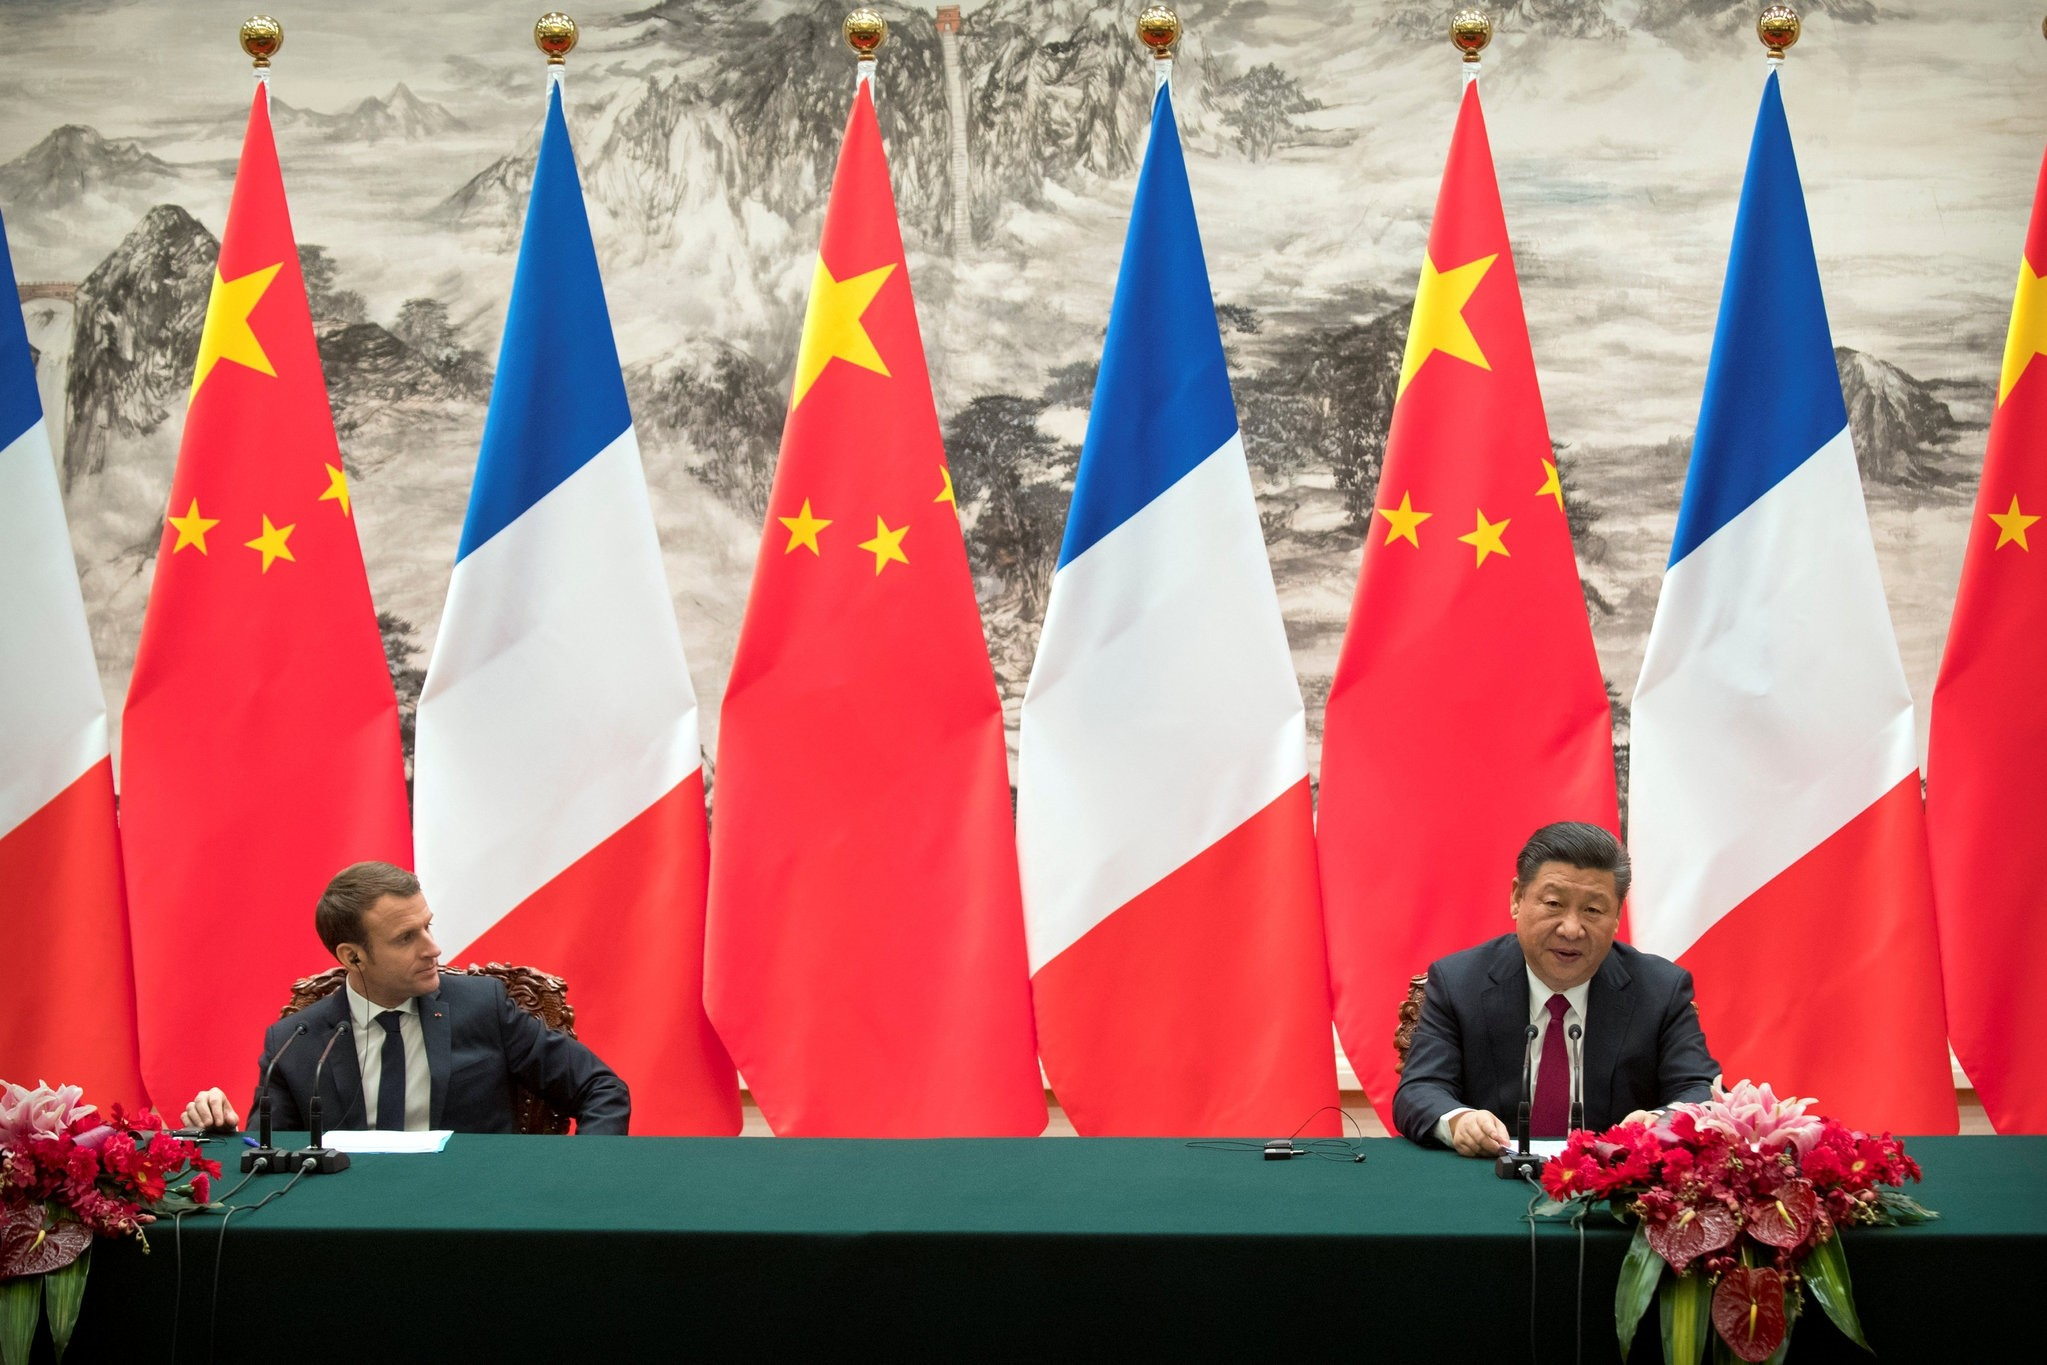 French President Emmanuel Macron, left, listens as Chinese President Xi Jinping speaks during a joint press briefing at the Great Hall of the People in Beijing, China January 9, 2018. (REUTERS Photo)